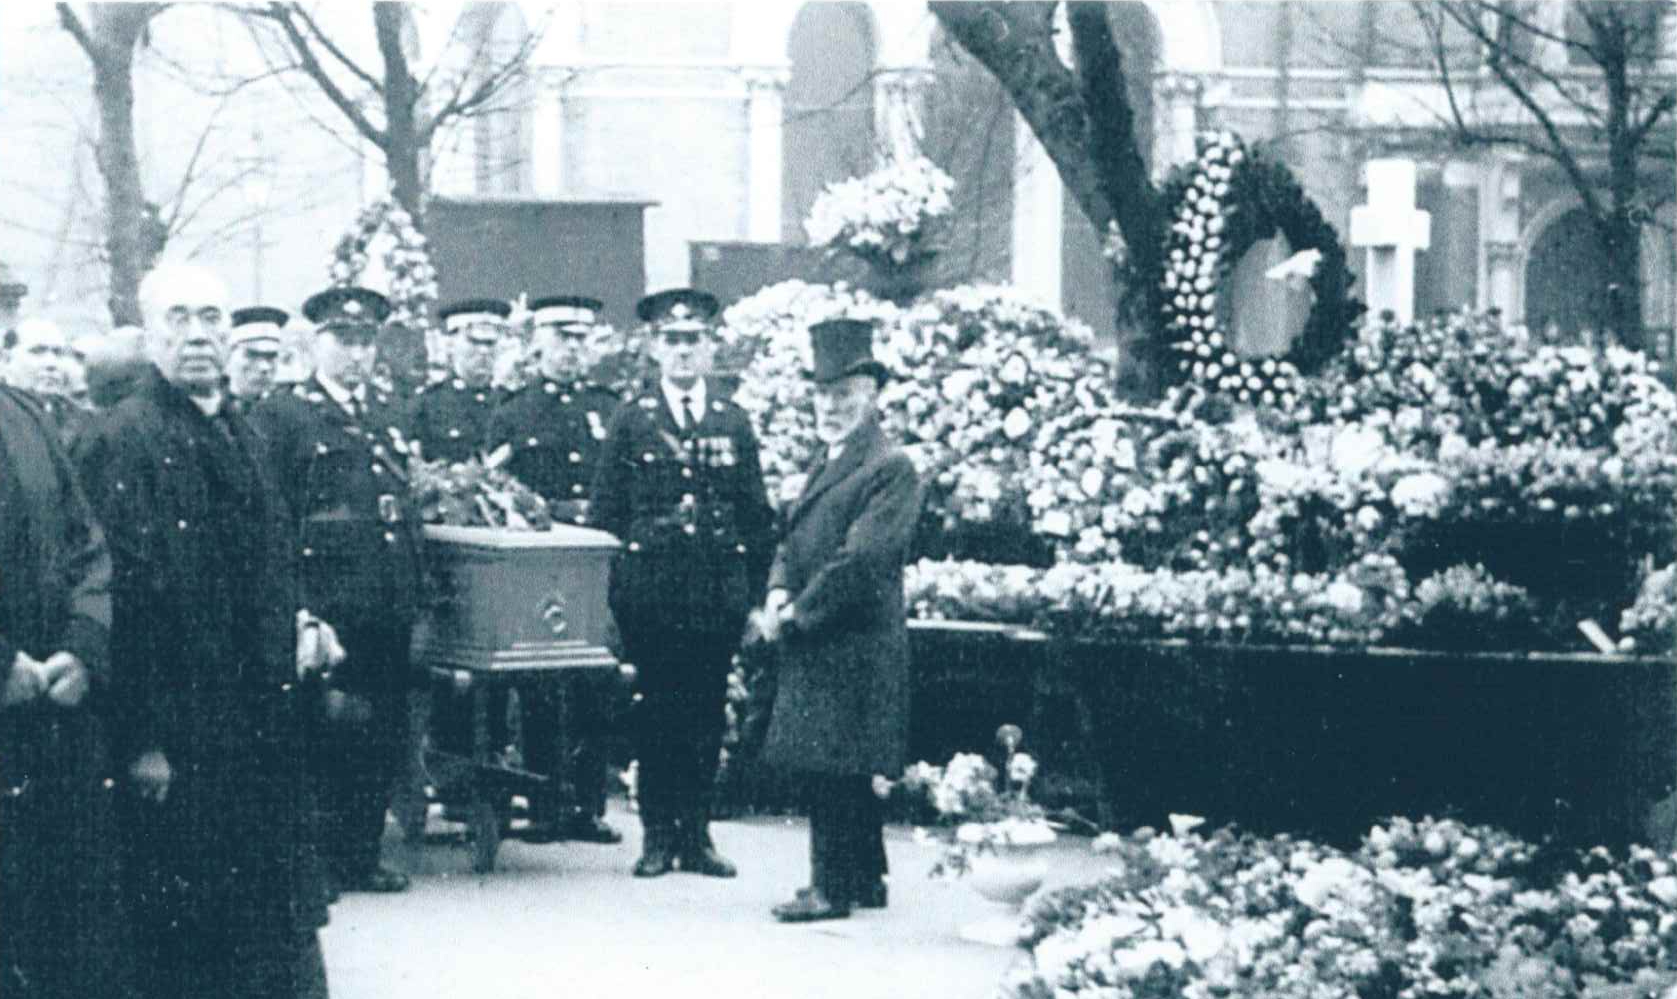 Doctor Cameron's Funeral